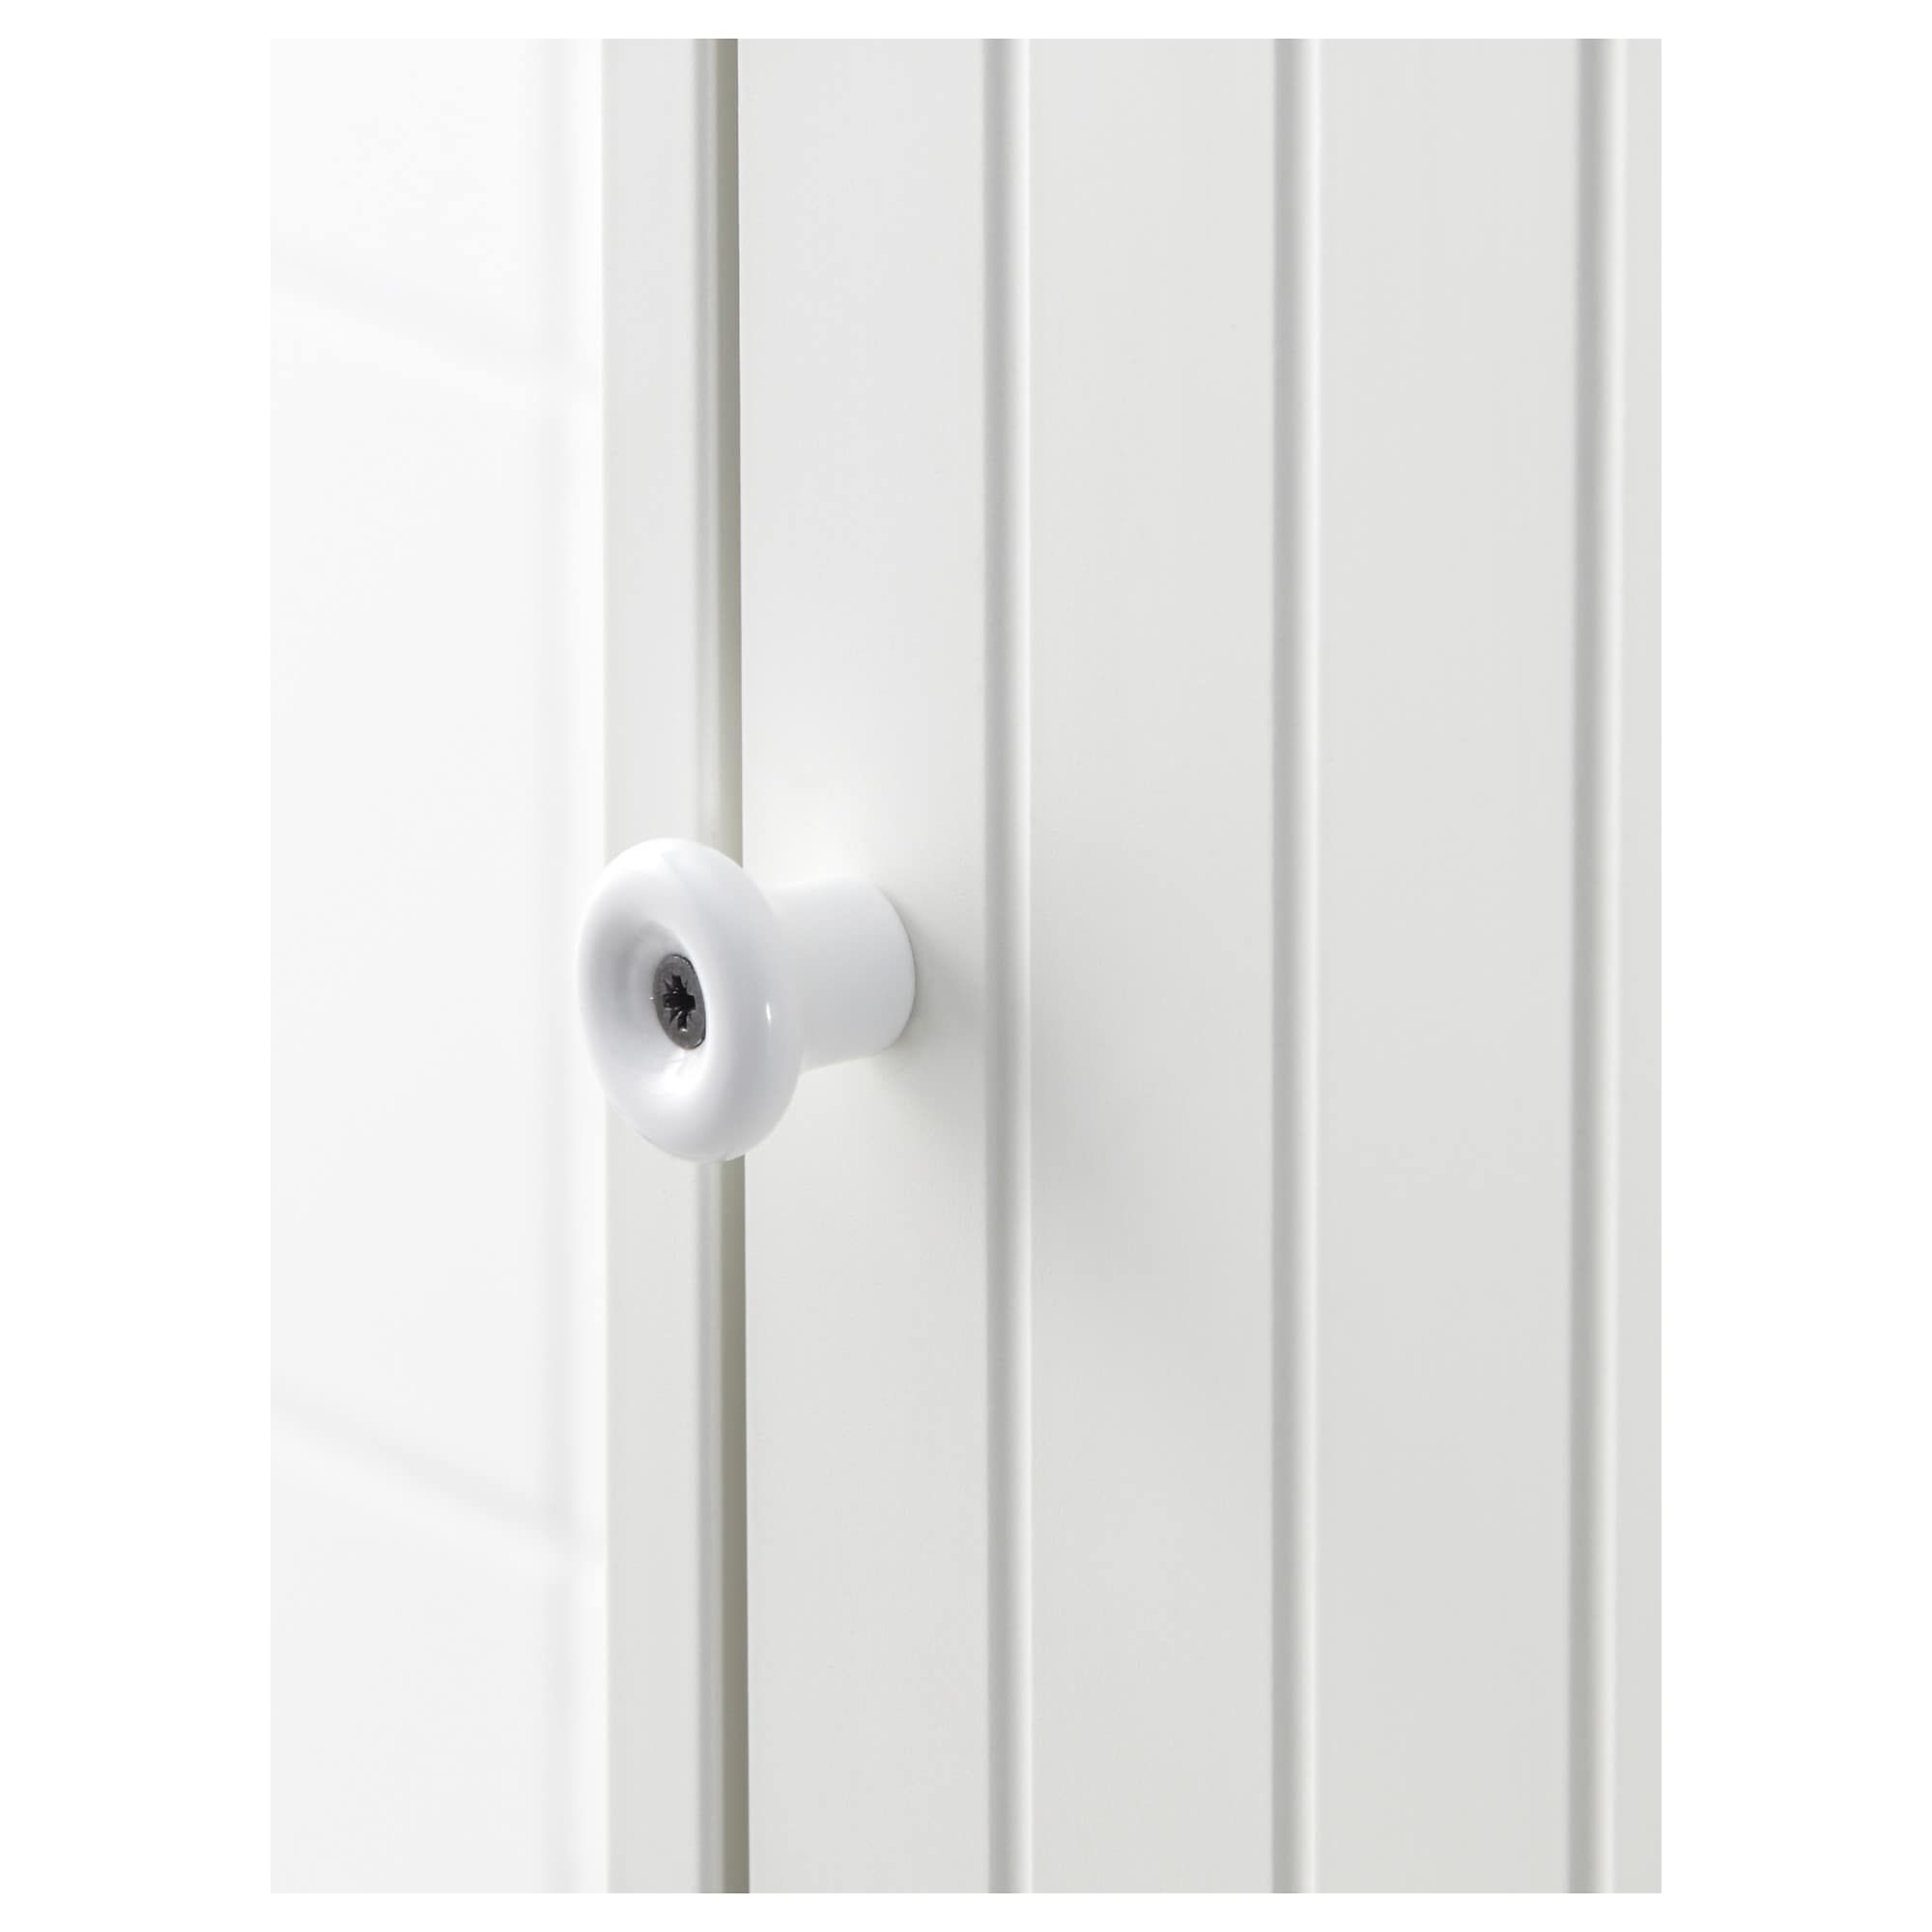 Silveran High Cabinet With 2 Doors White 15 3 4x9 7 8x67 3 4